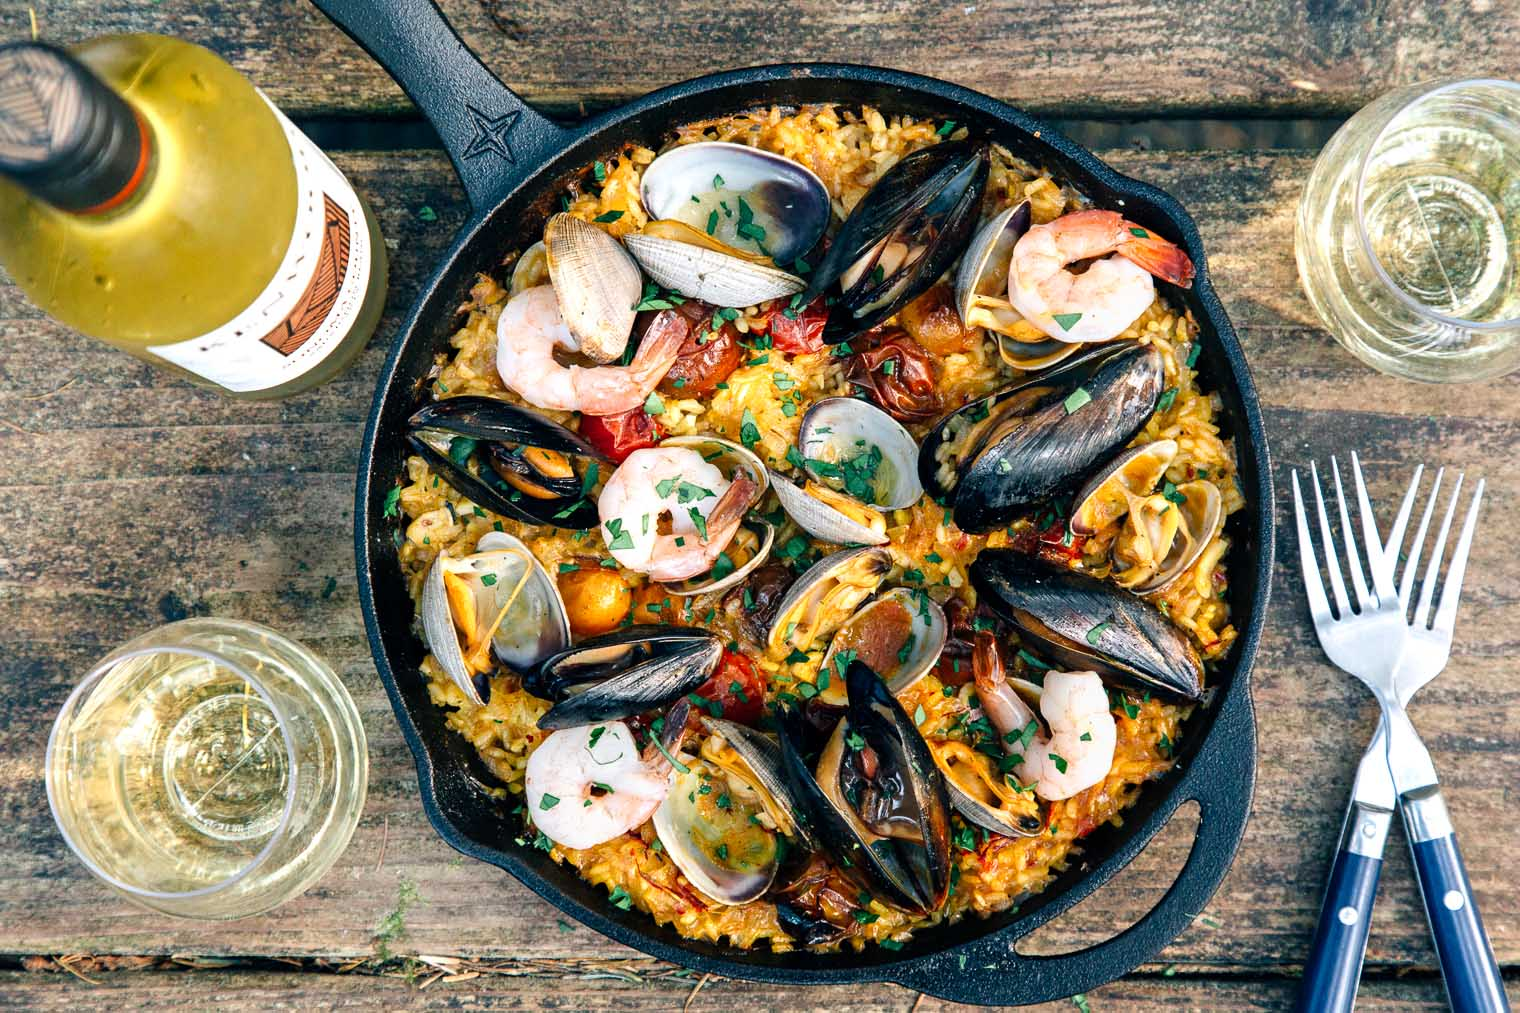 Paella in a skillet on a camping table with forks and a bottle of wine in frame